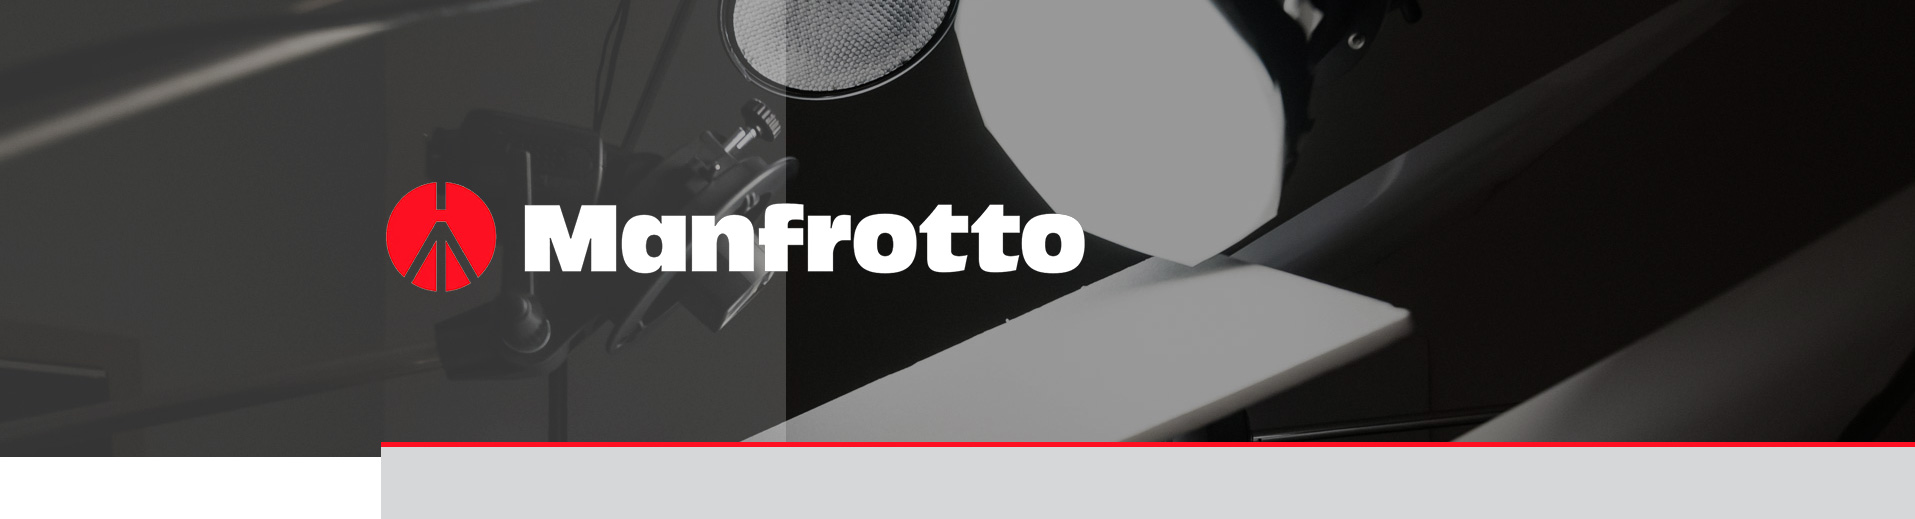 manfrotto-Light-Control-banner